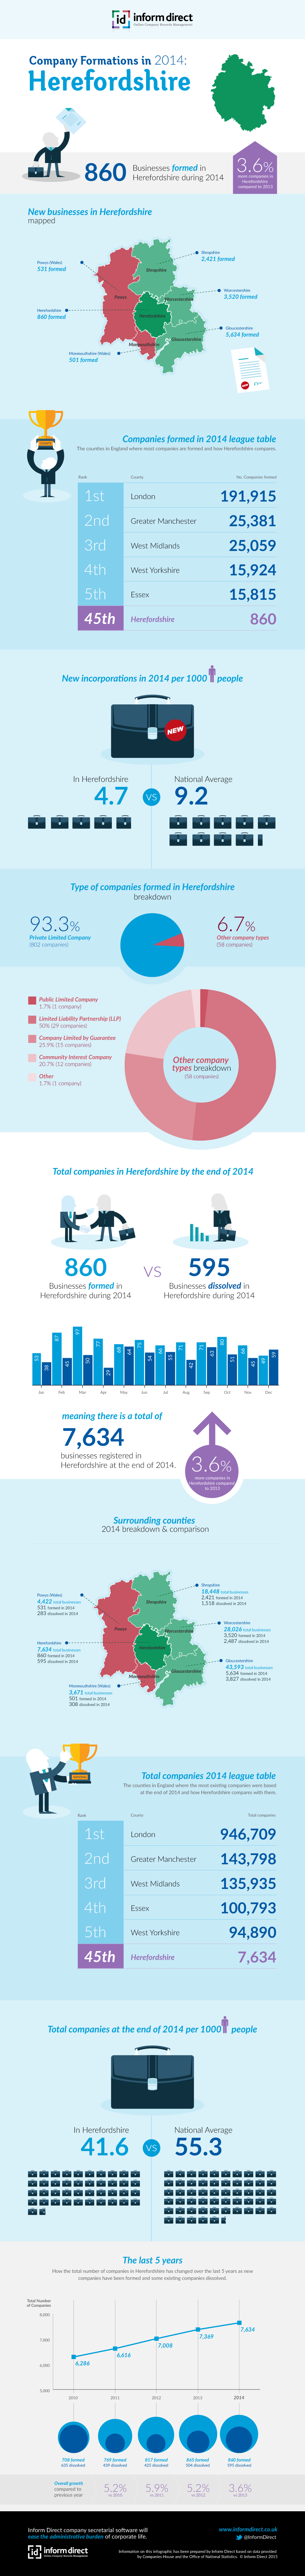 Inform Direct - Company Formations in Herefordshire 2014 Infographic